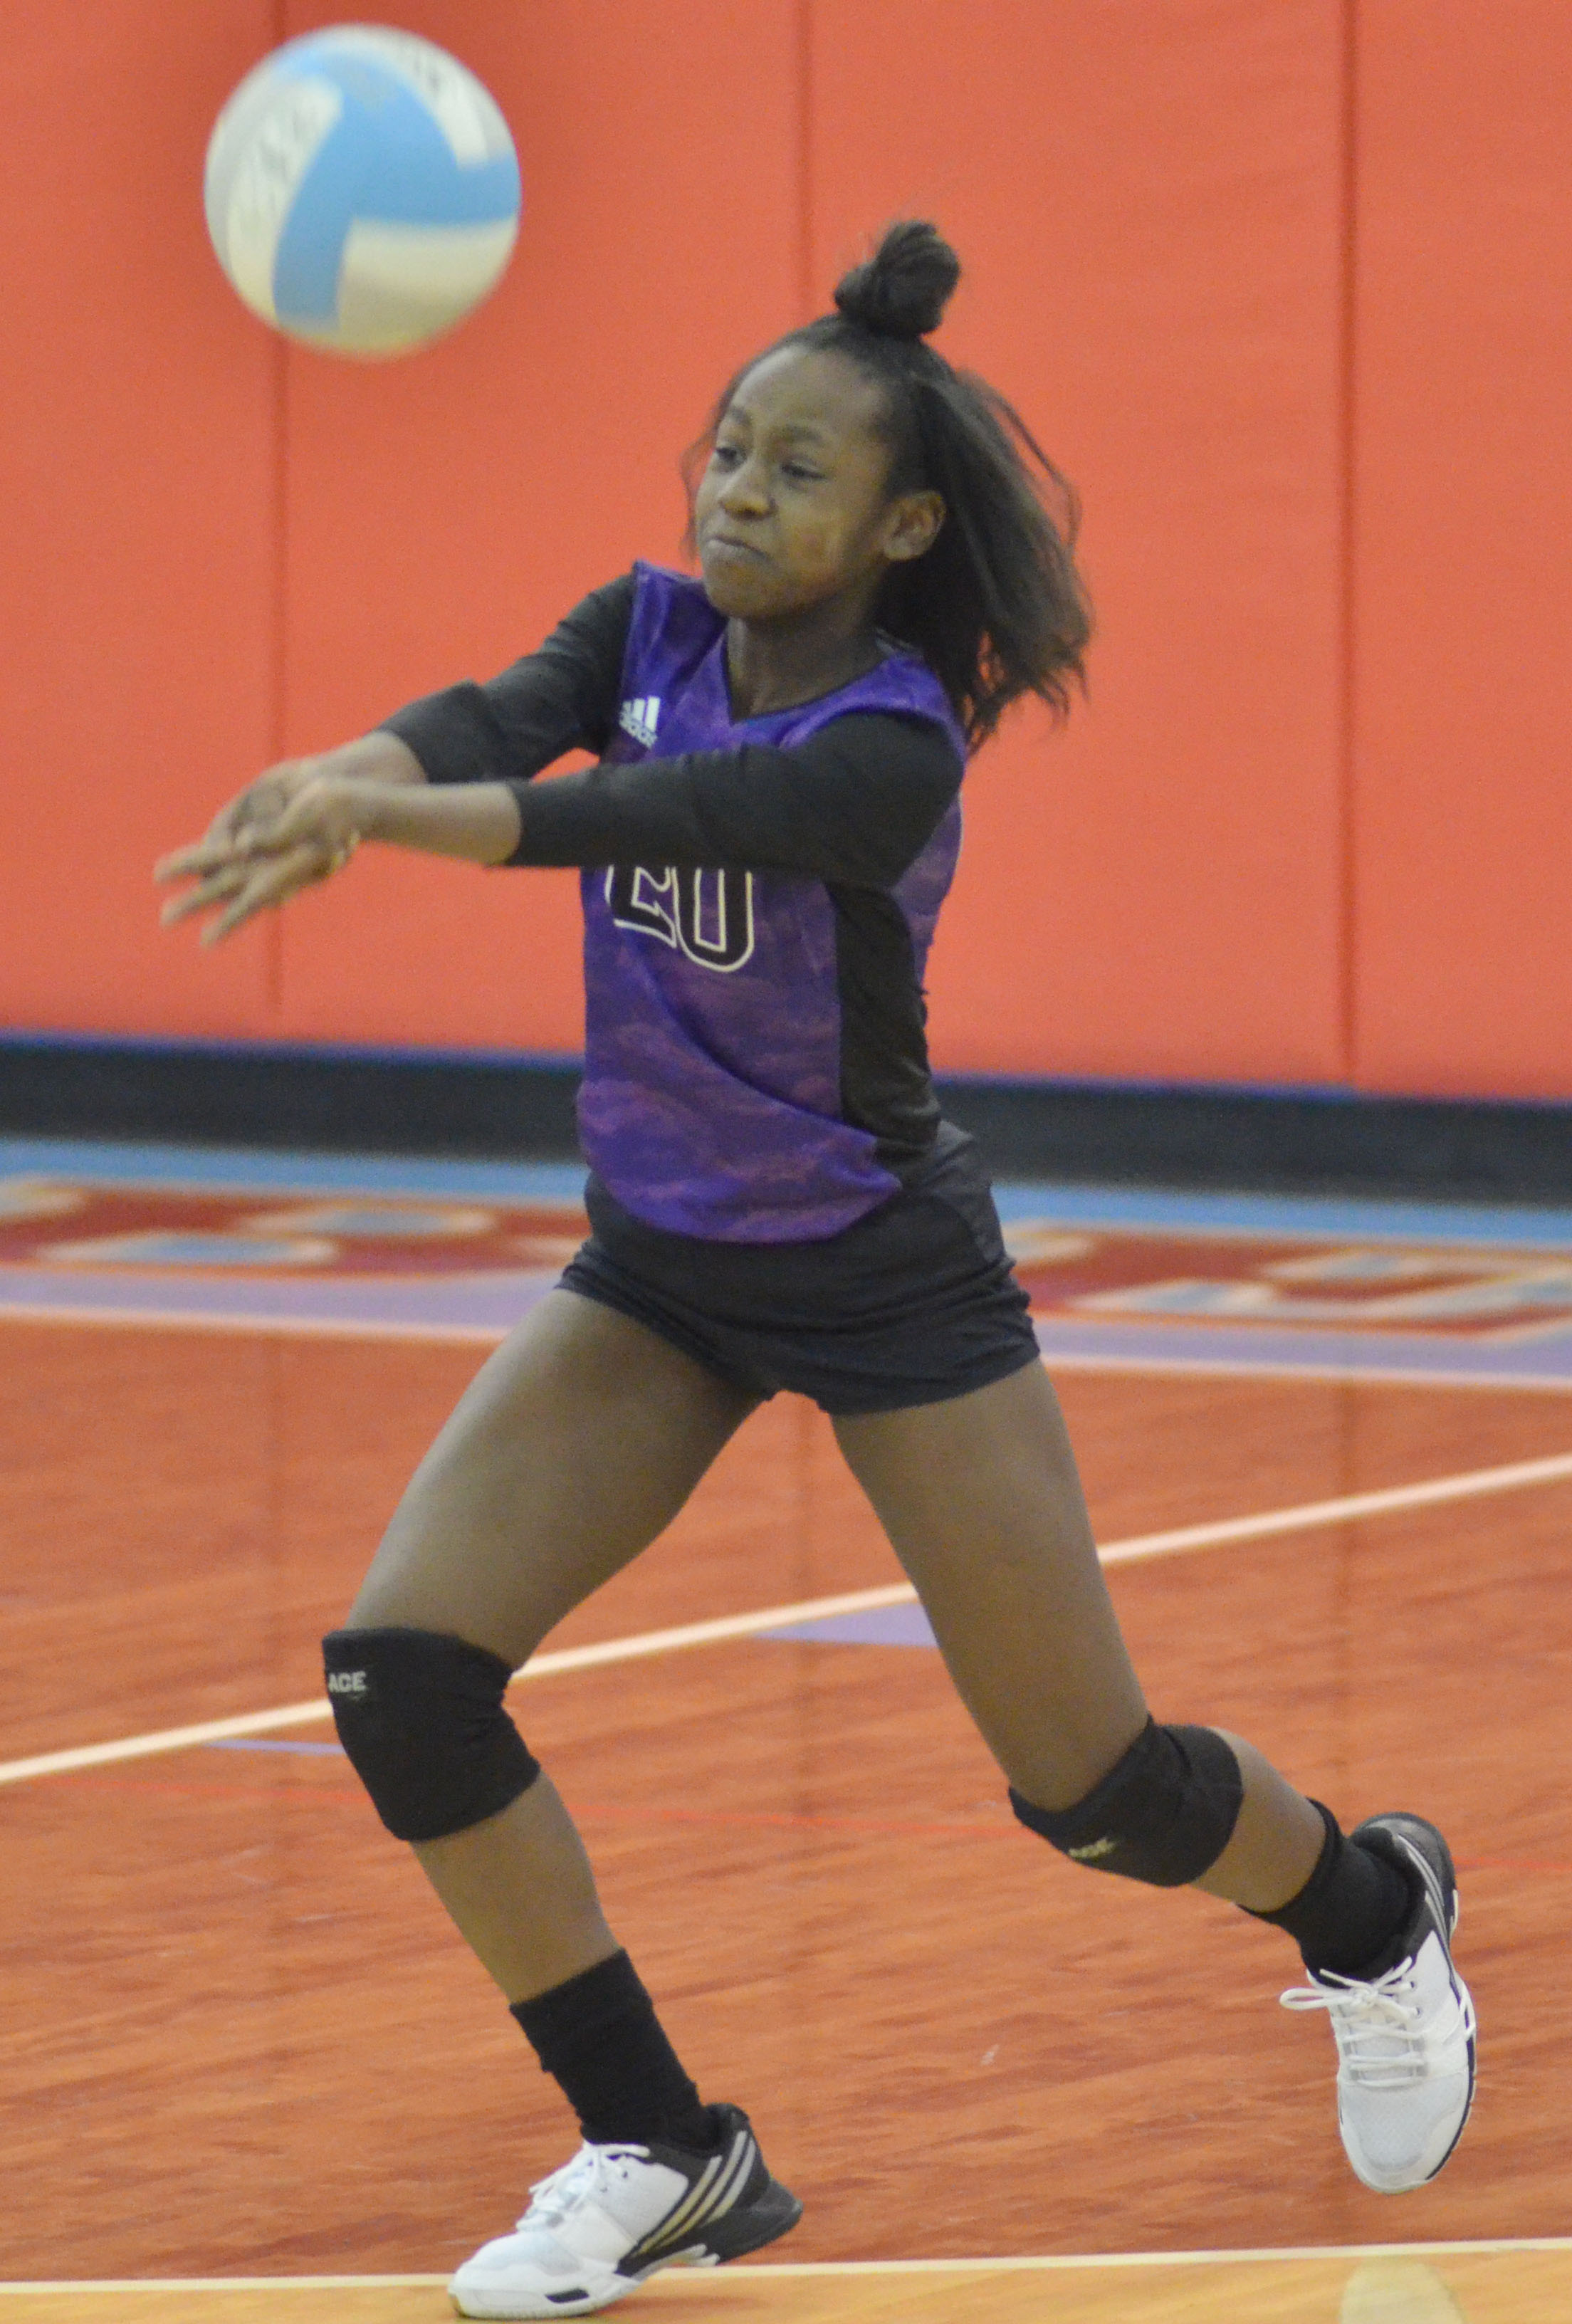 CMS seventh-grader Myricle Gholston hits the ball.